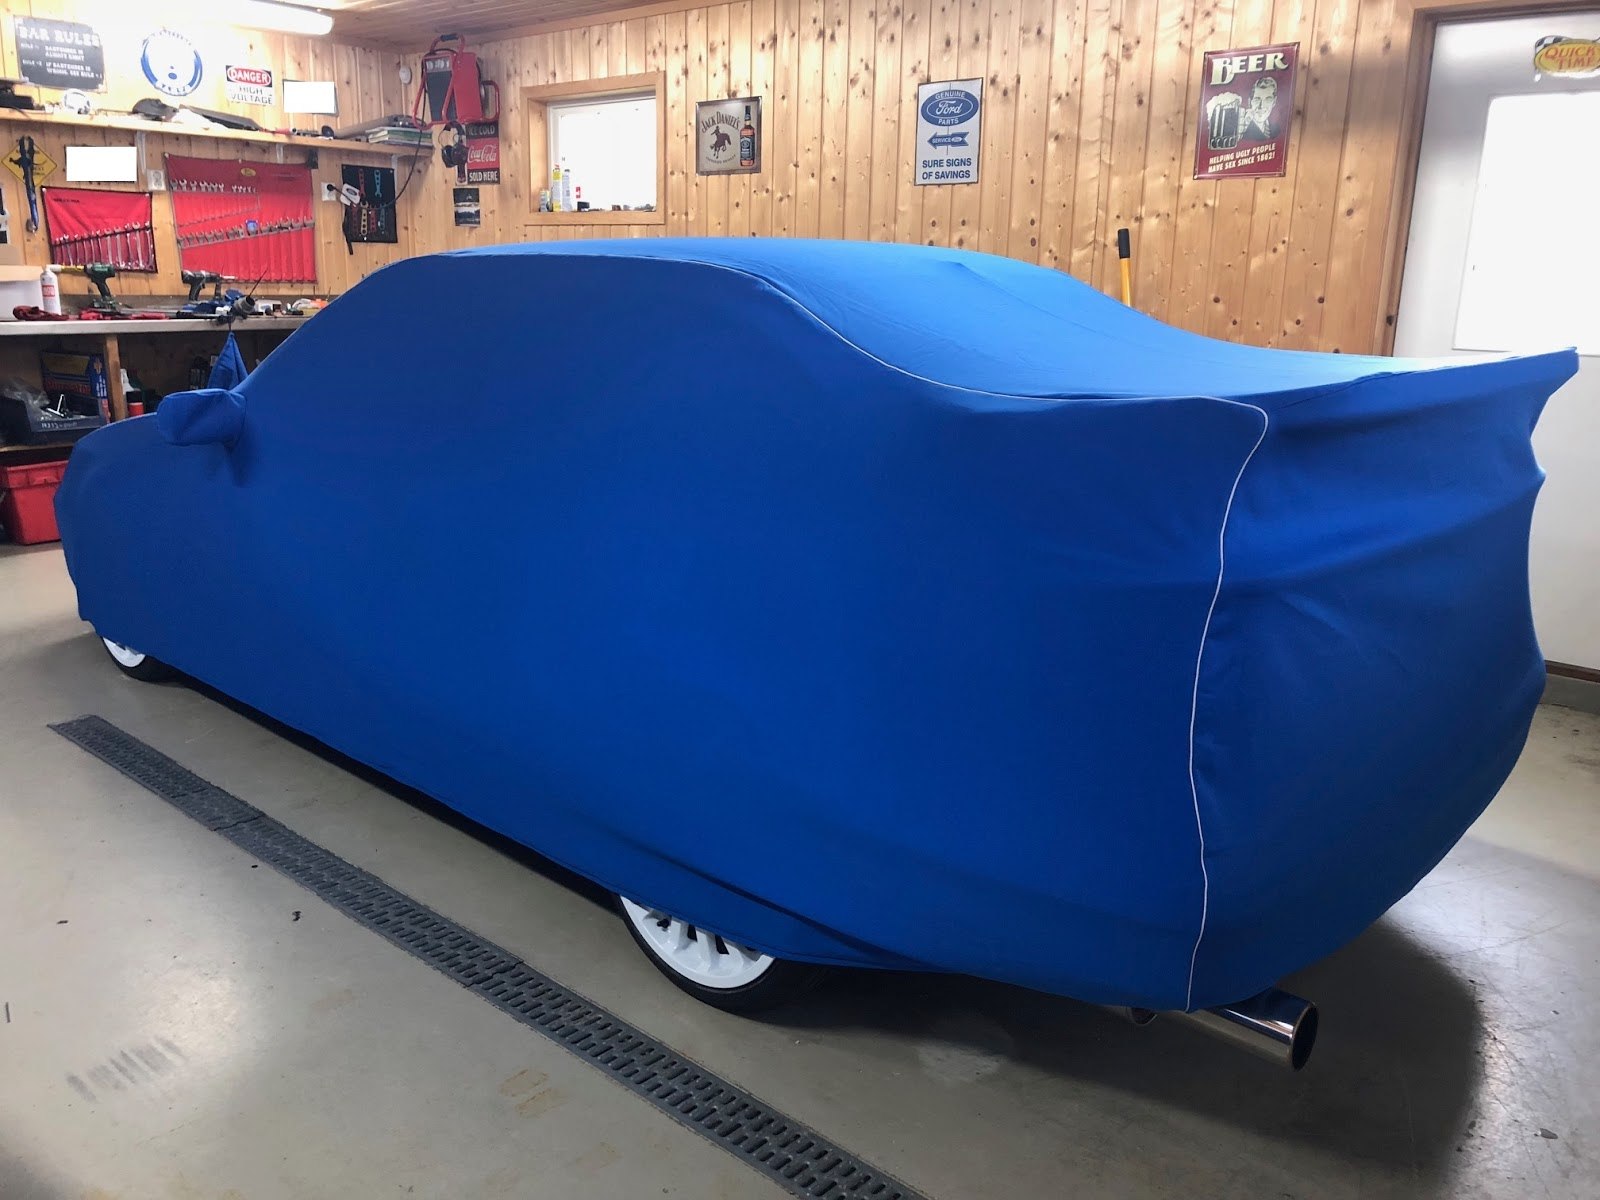 B Car D In A Dry Garage If You Are Lucky Enough To Have Nice Then Ed Indoor Cover Will Protect The From Dirt